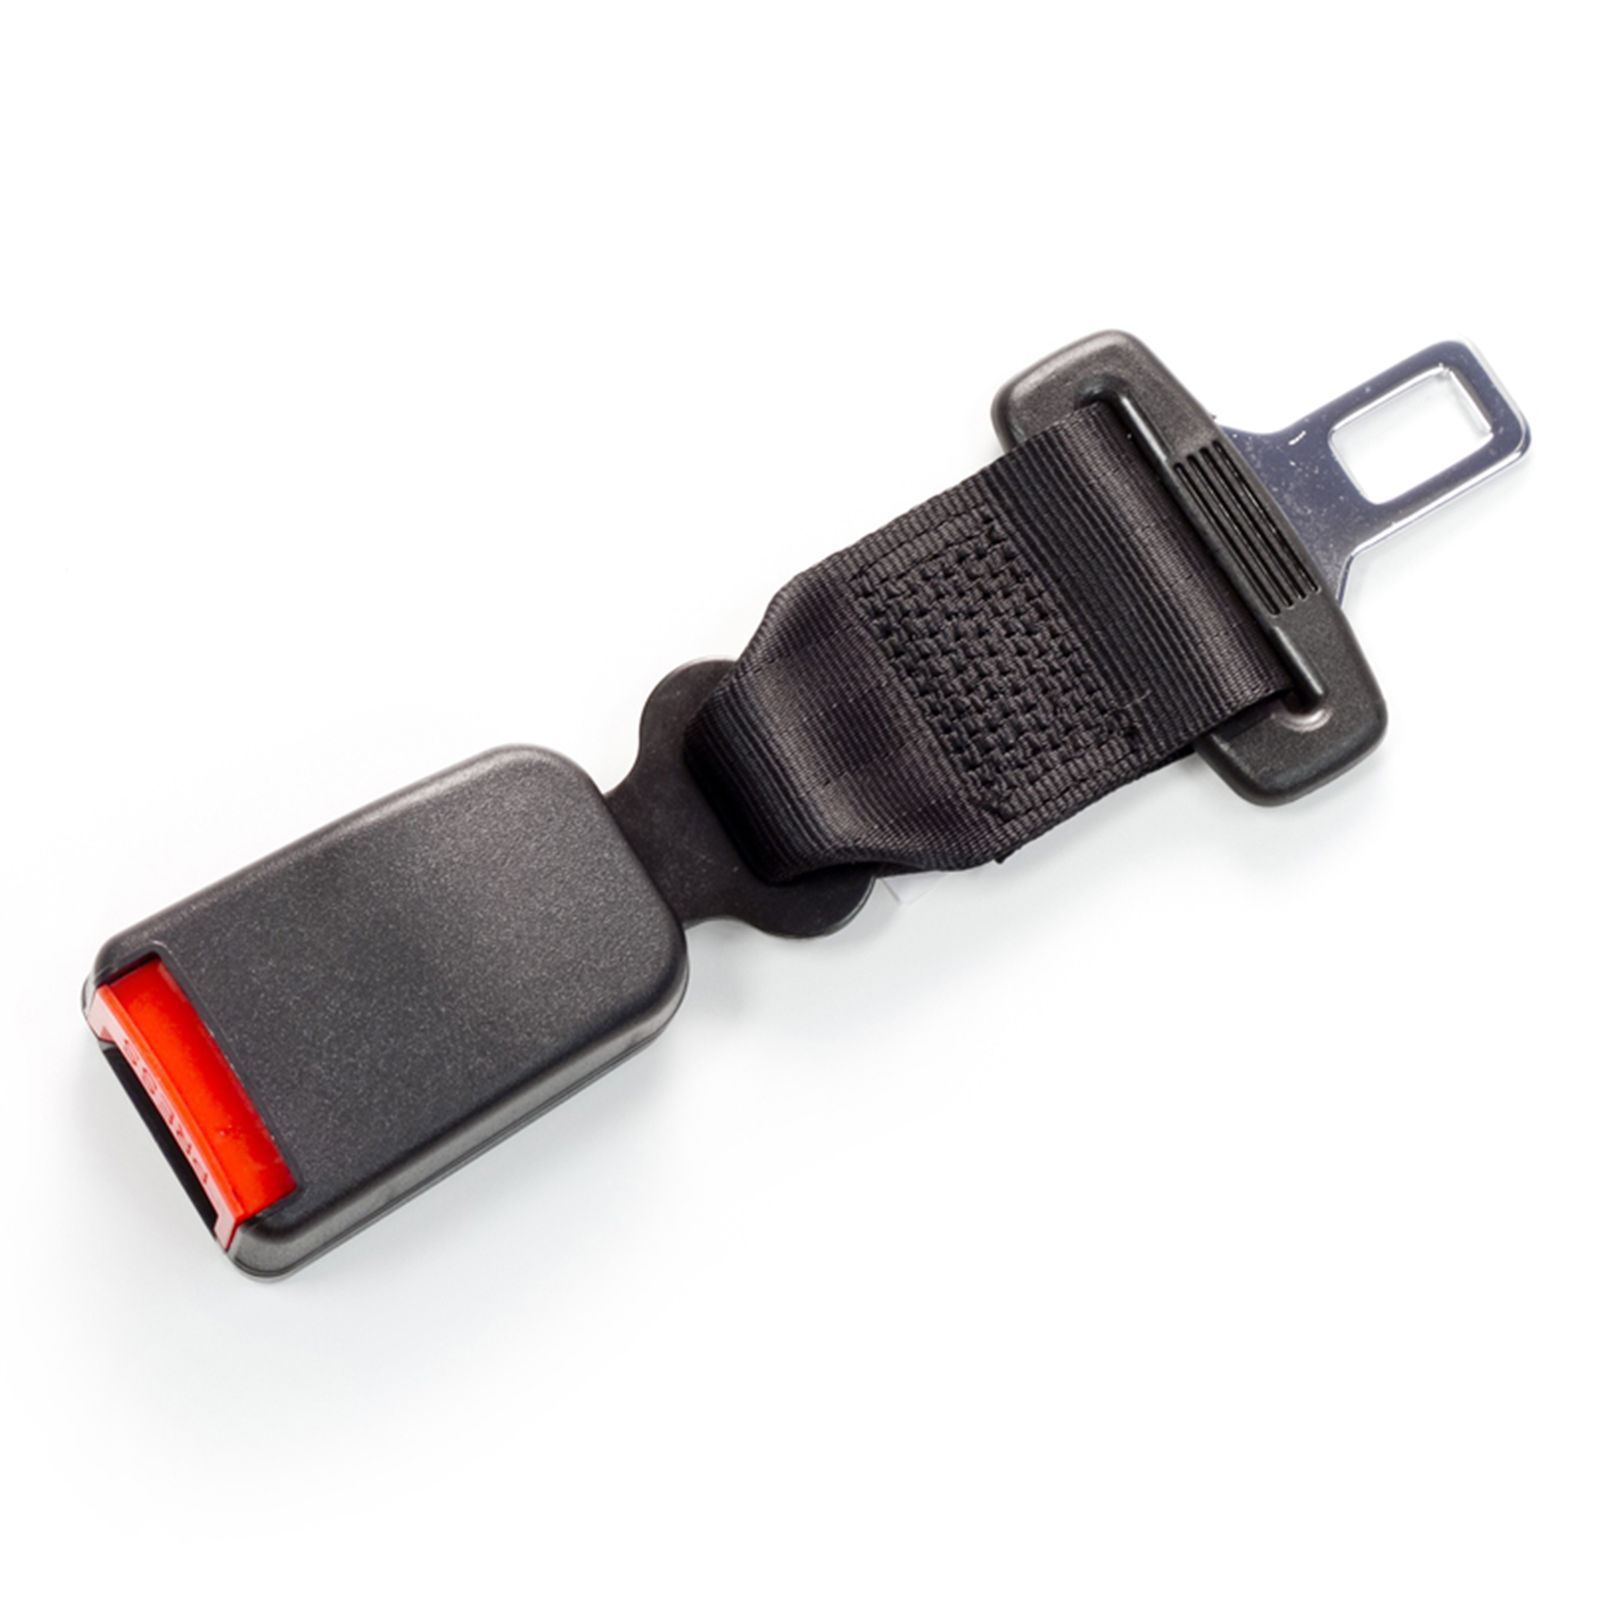 Primary image for Seat Belt Extension for 2014 Toyota Camry Front Seats - E4 Safety Certified